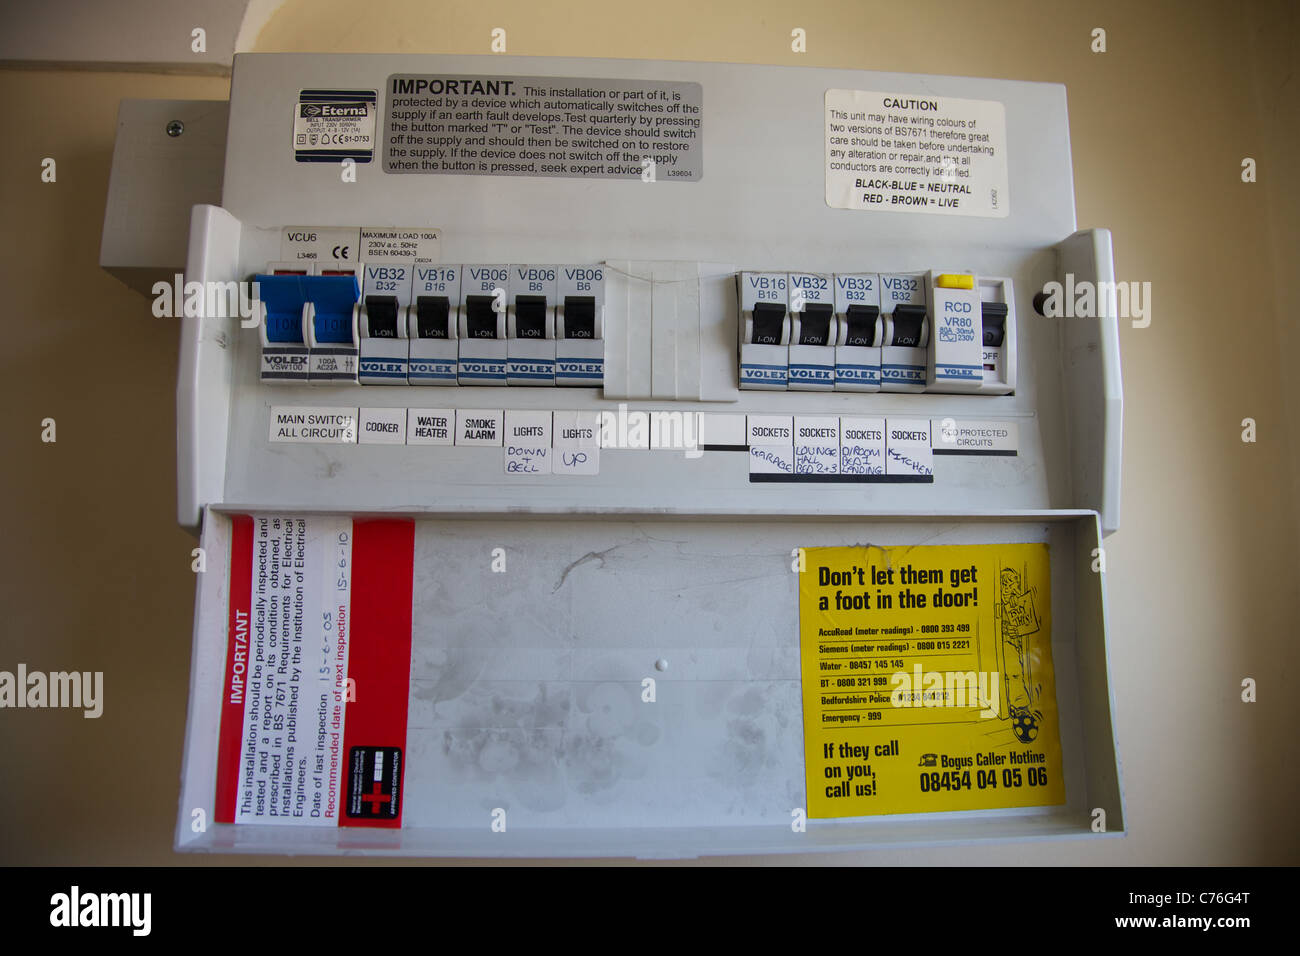 Domestic Fuse Box Stock Photos Images Alamy Black A England Image